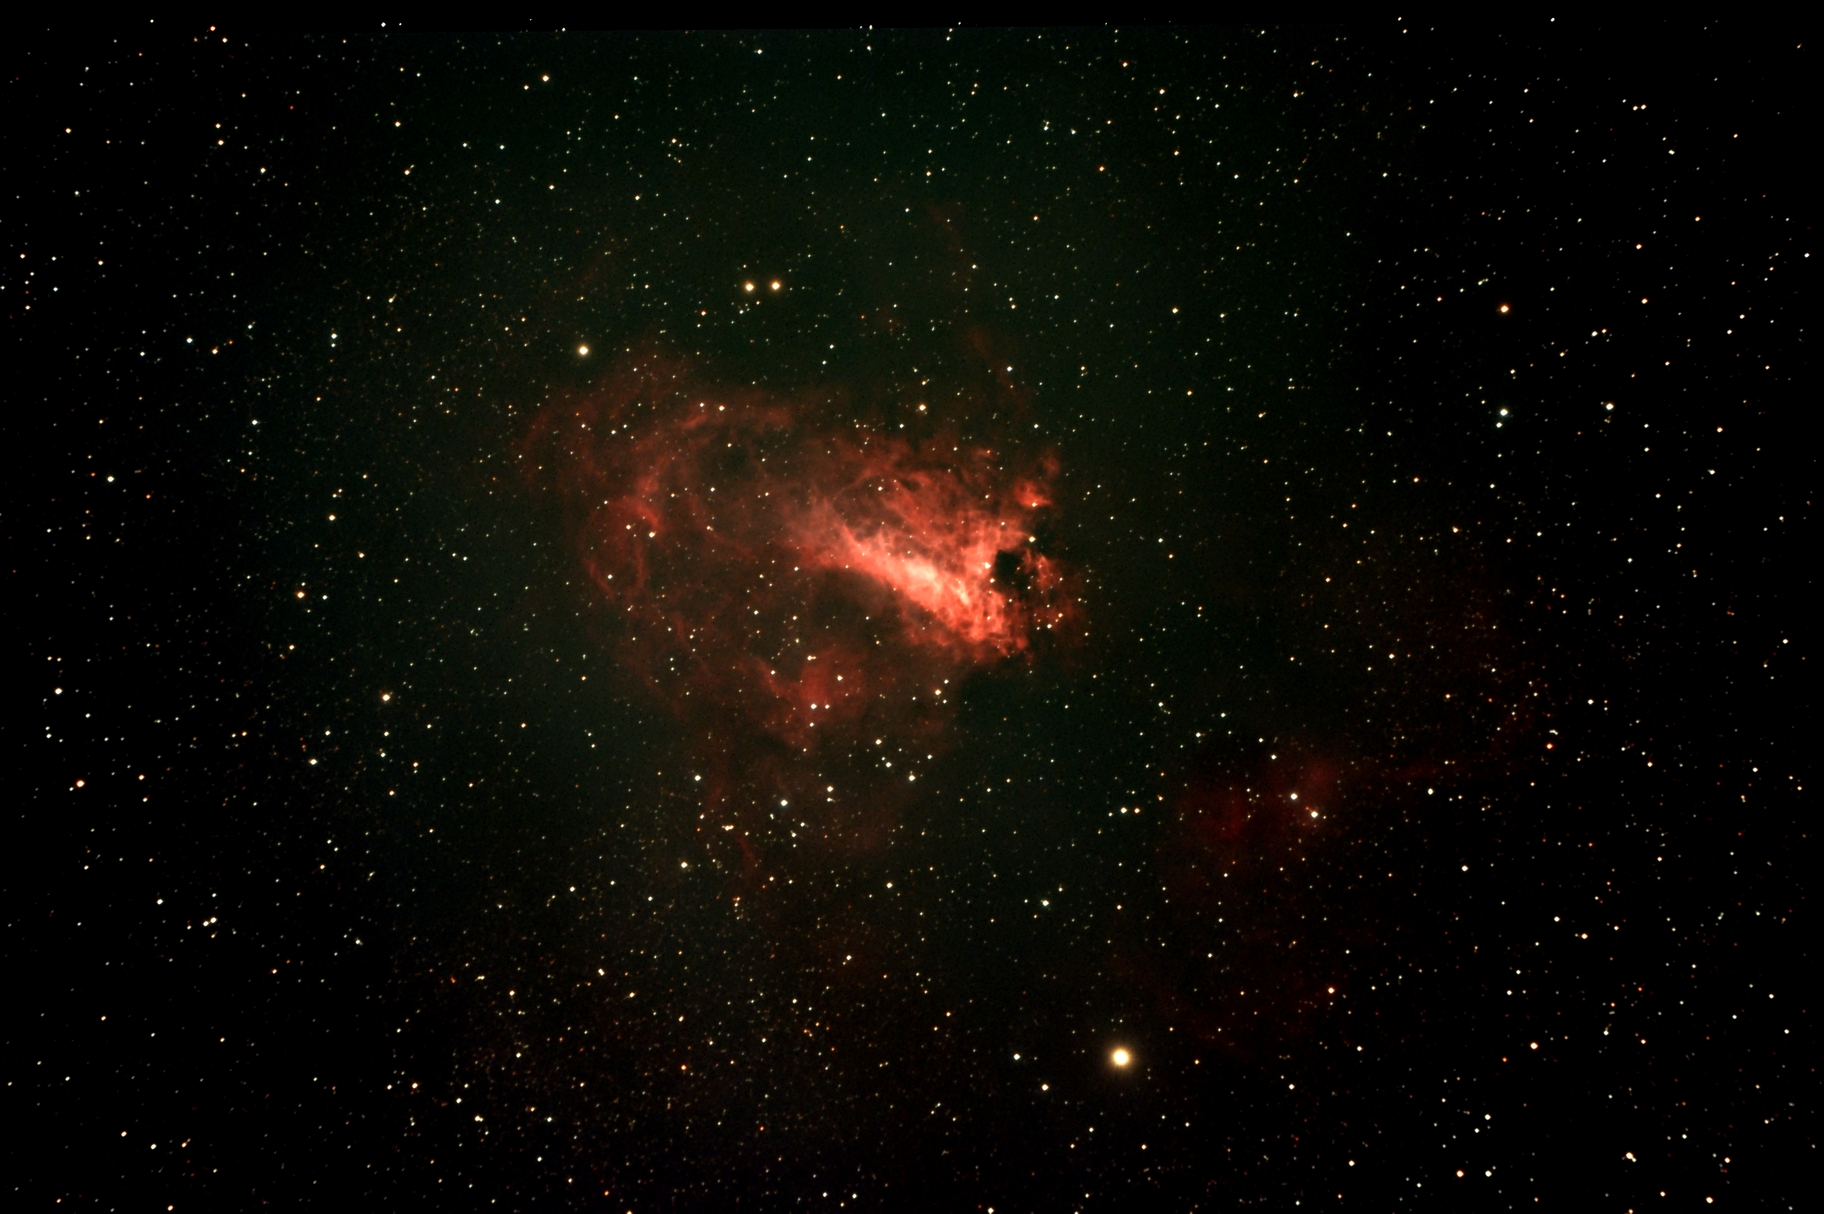 omega nebula nasa - photo #16